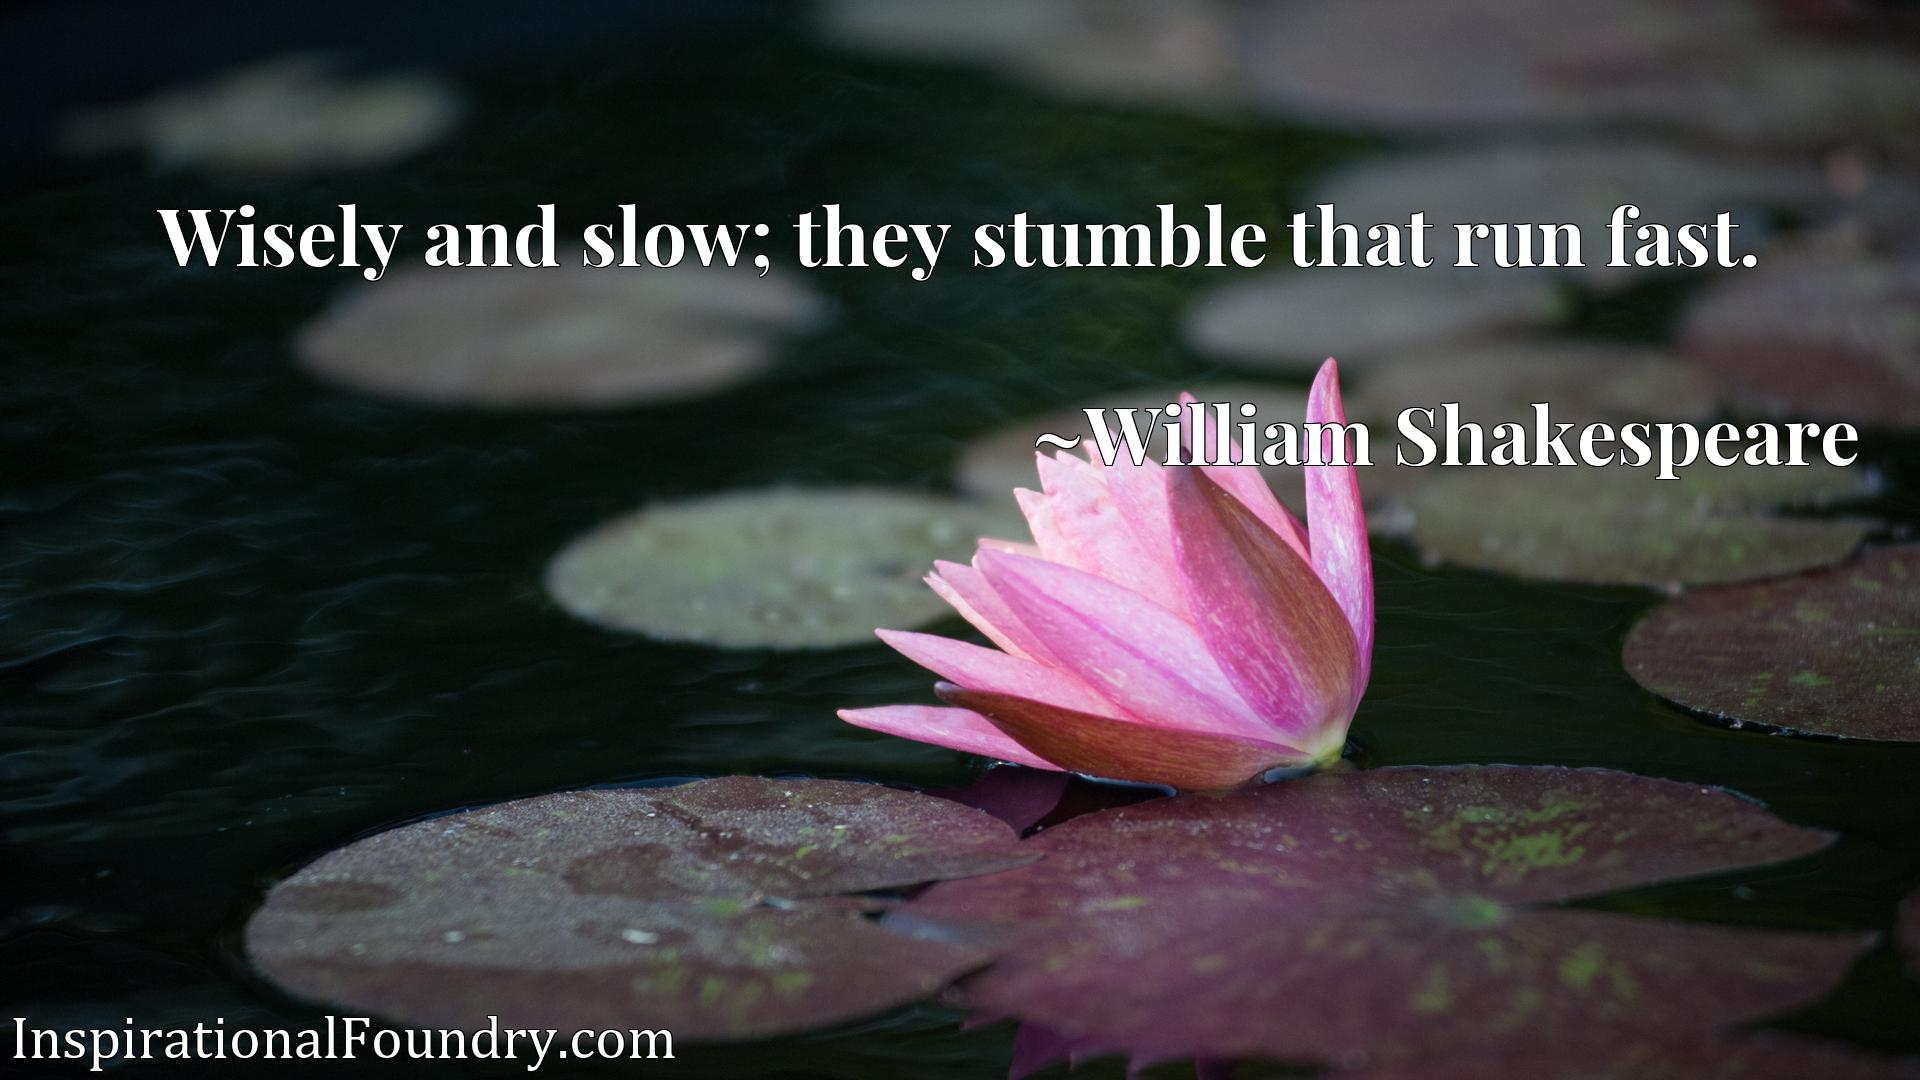 Wisely and slow; they stumble that run fast.